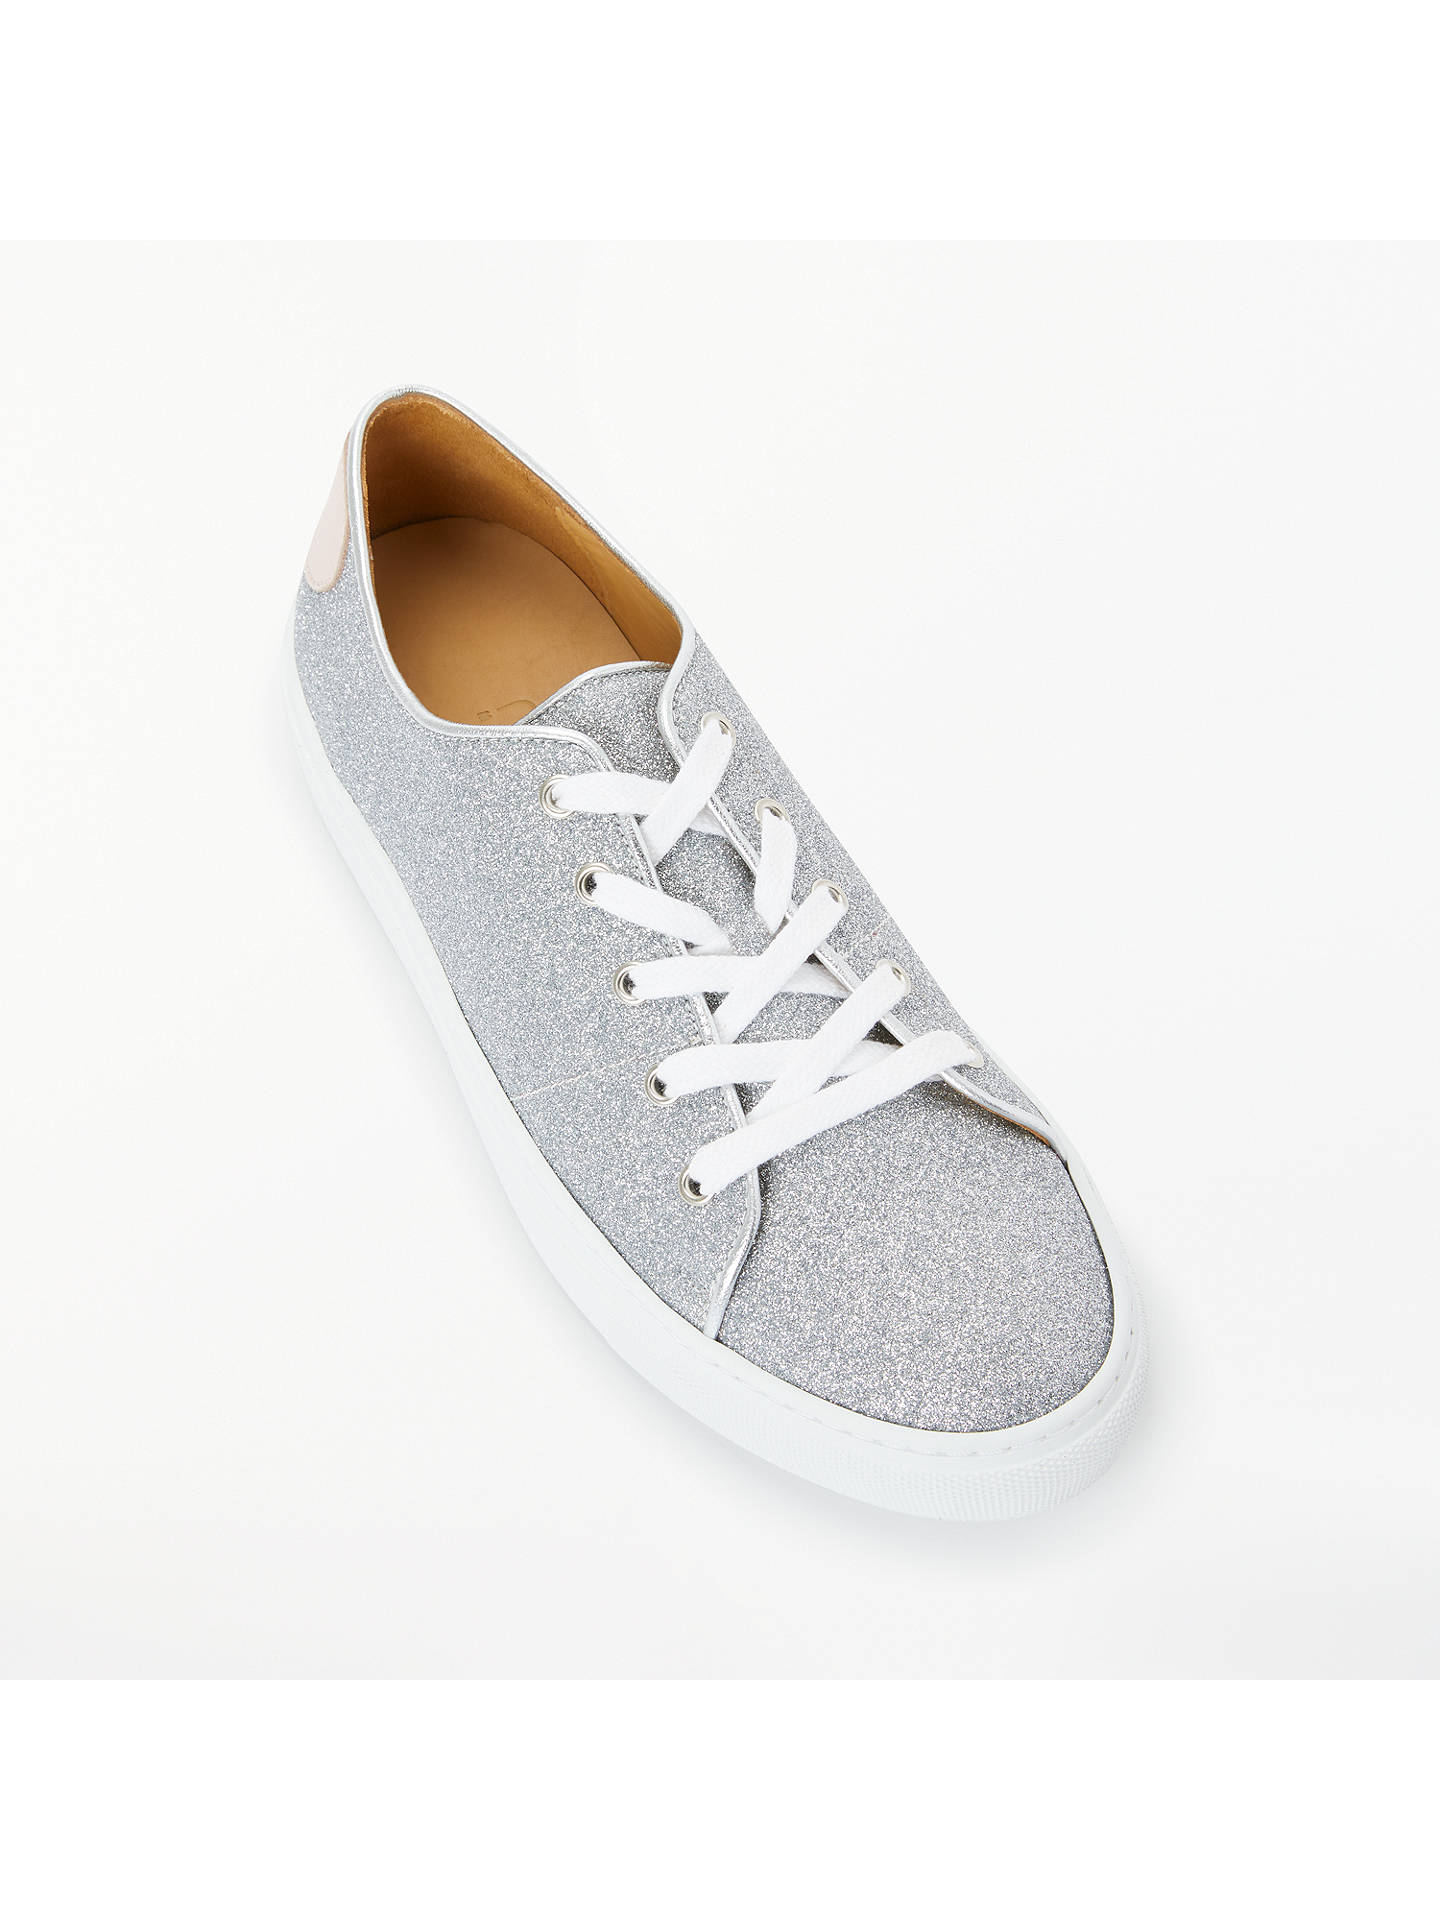 Rogue Matilda Sweetheart Trainers, Grey Glitter at John